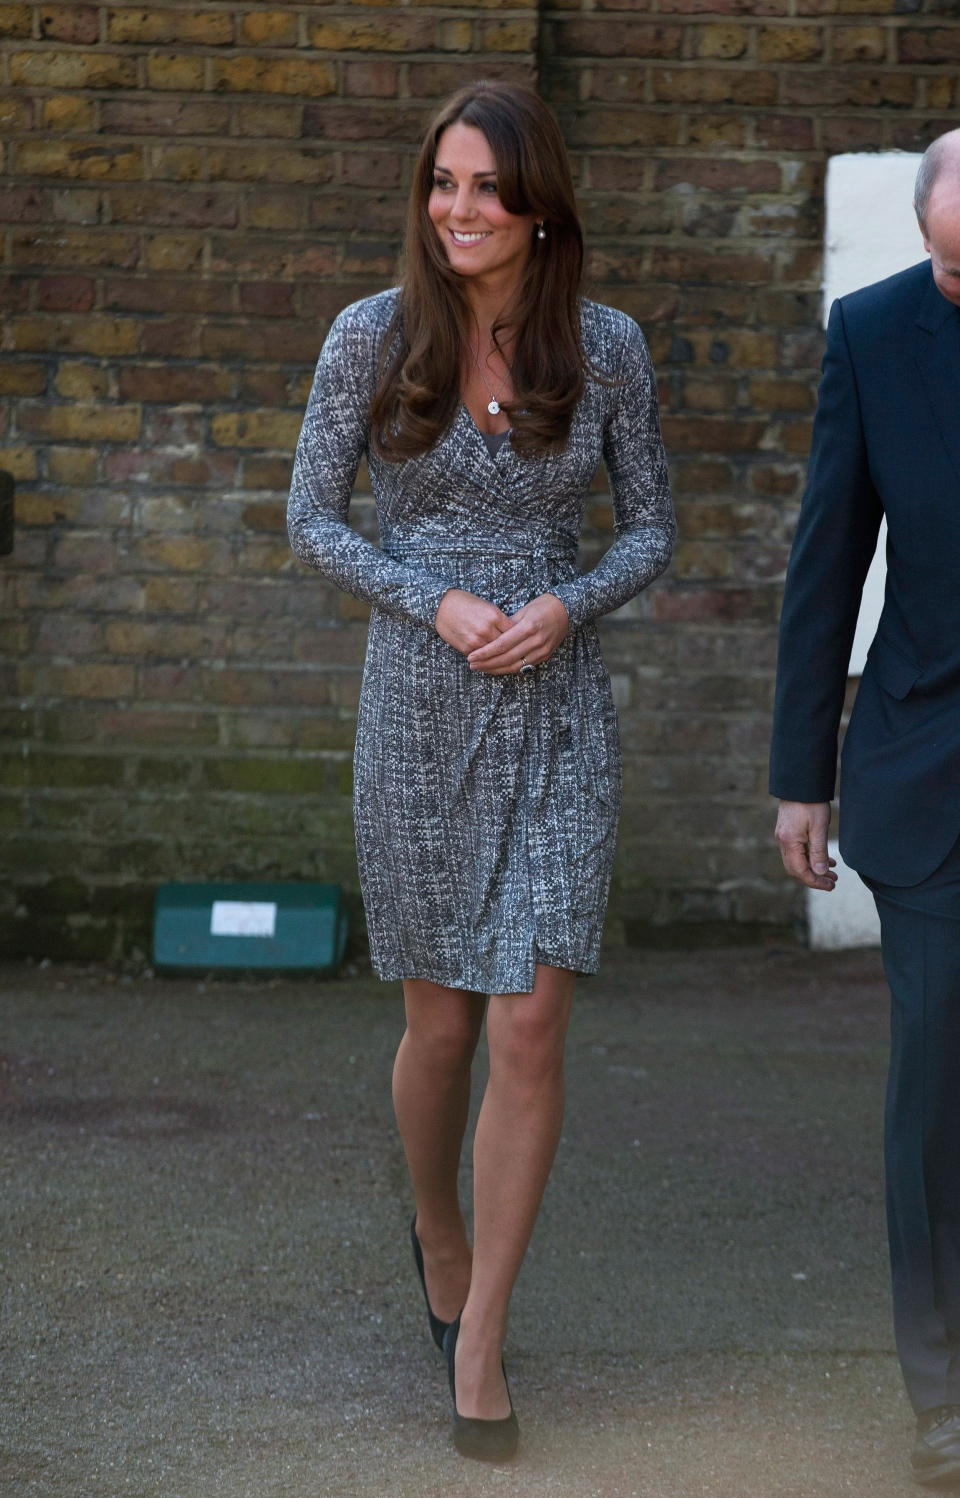 The Duchess of Cambridge arrives at Hope House, in London on Tuesday, Feb. 19, 2013. (AP / Matt Dunham)